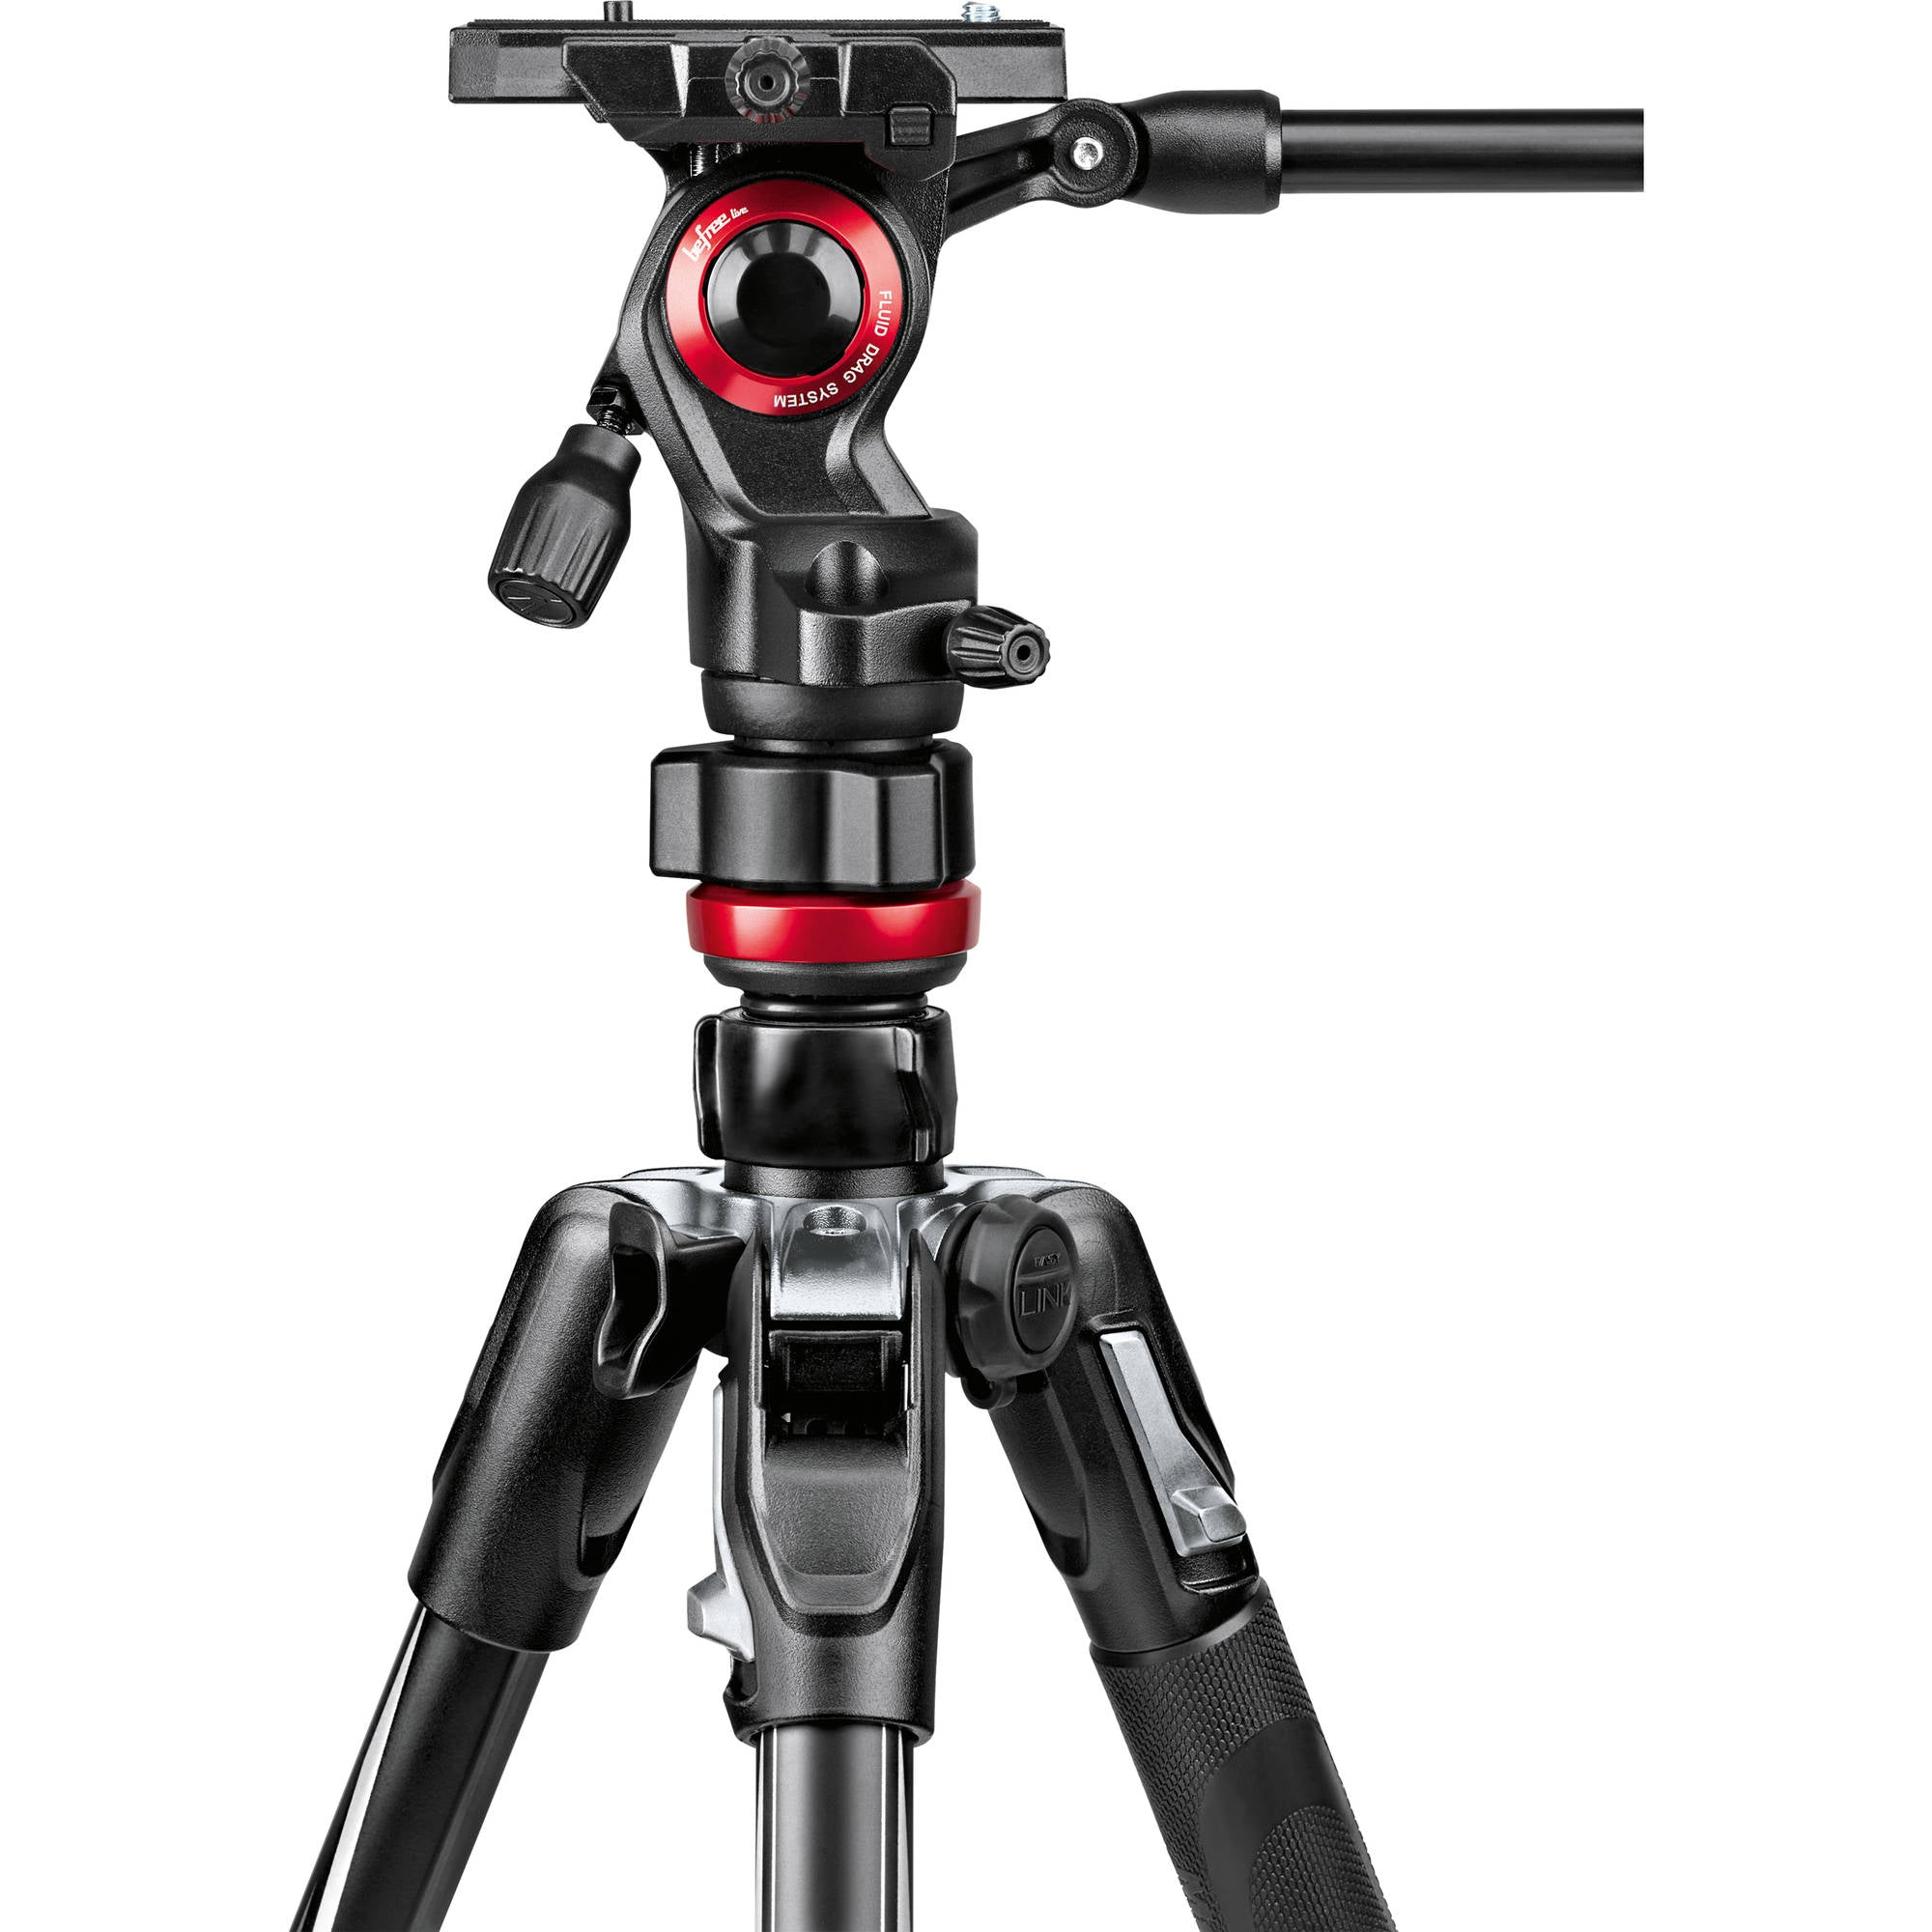 Manfrotto Befree Live Aluminum Video Tripod Kit with Twist Leg Locks